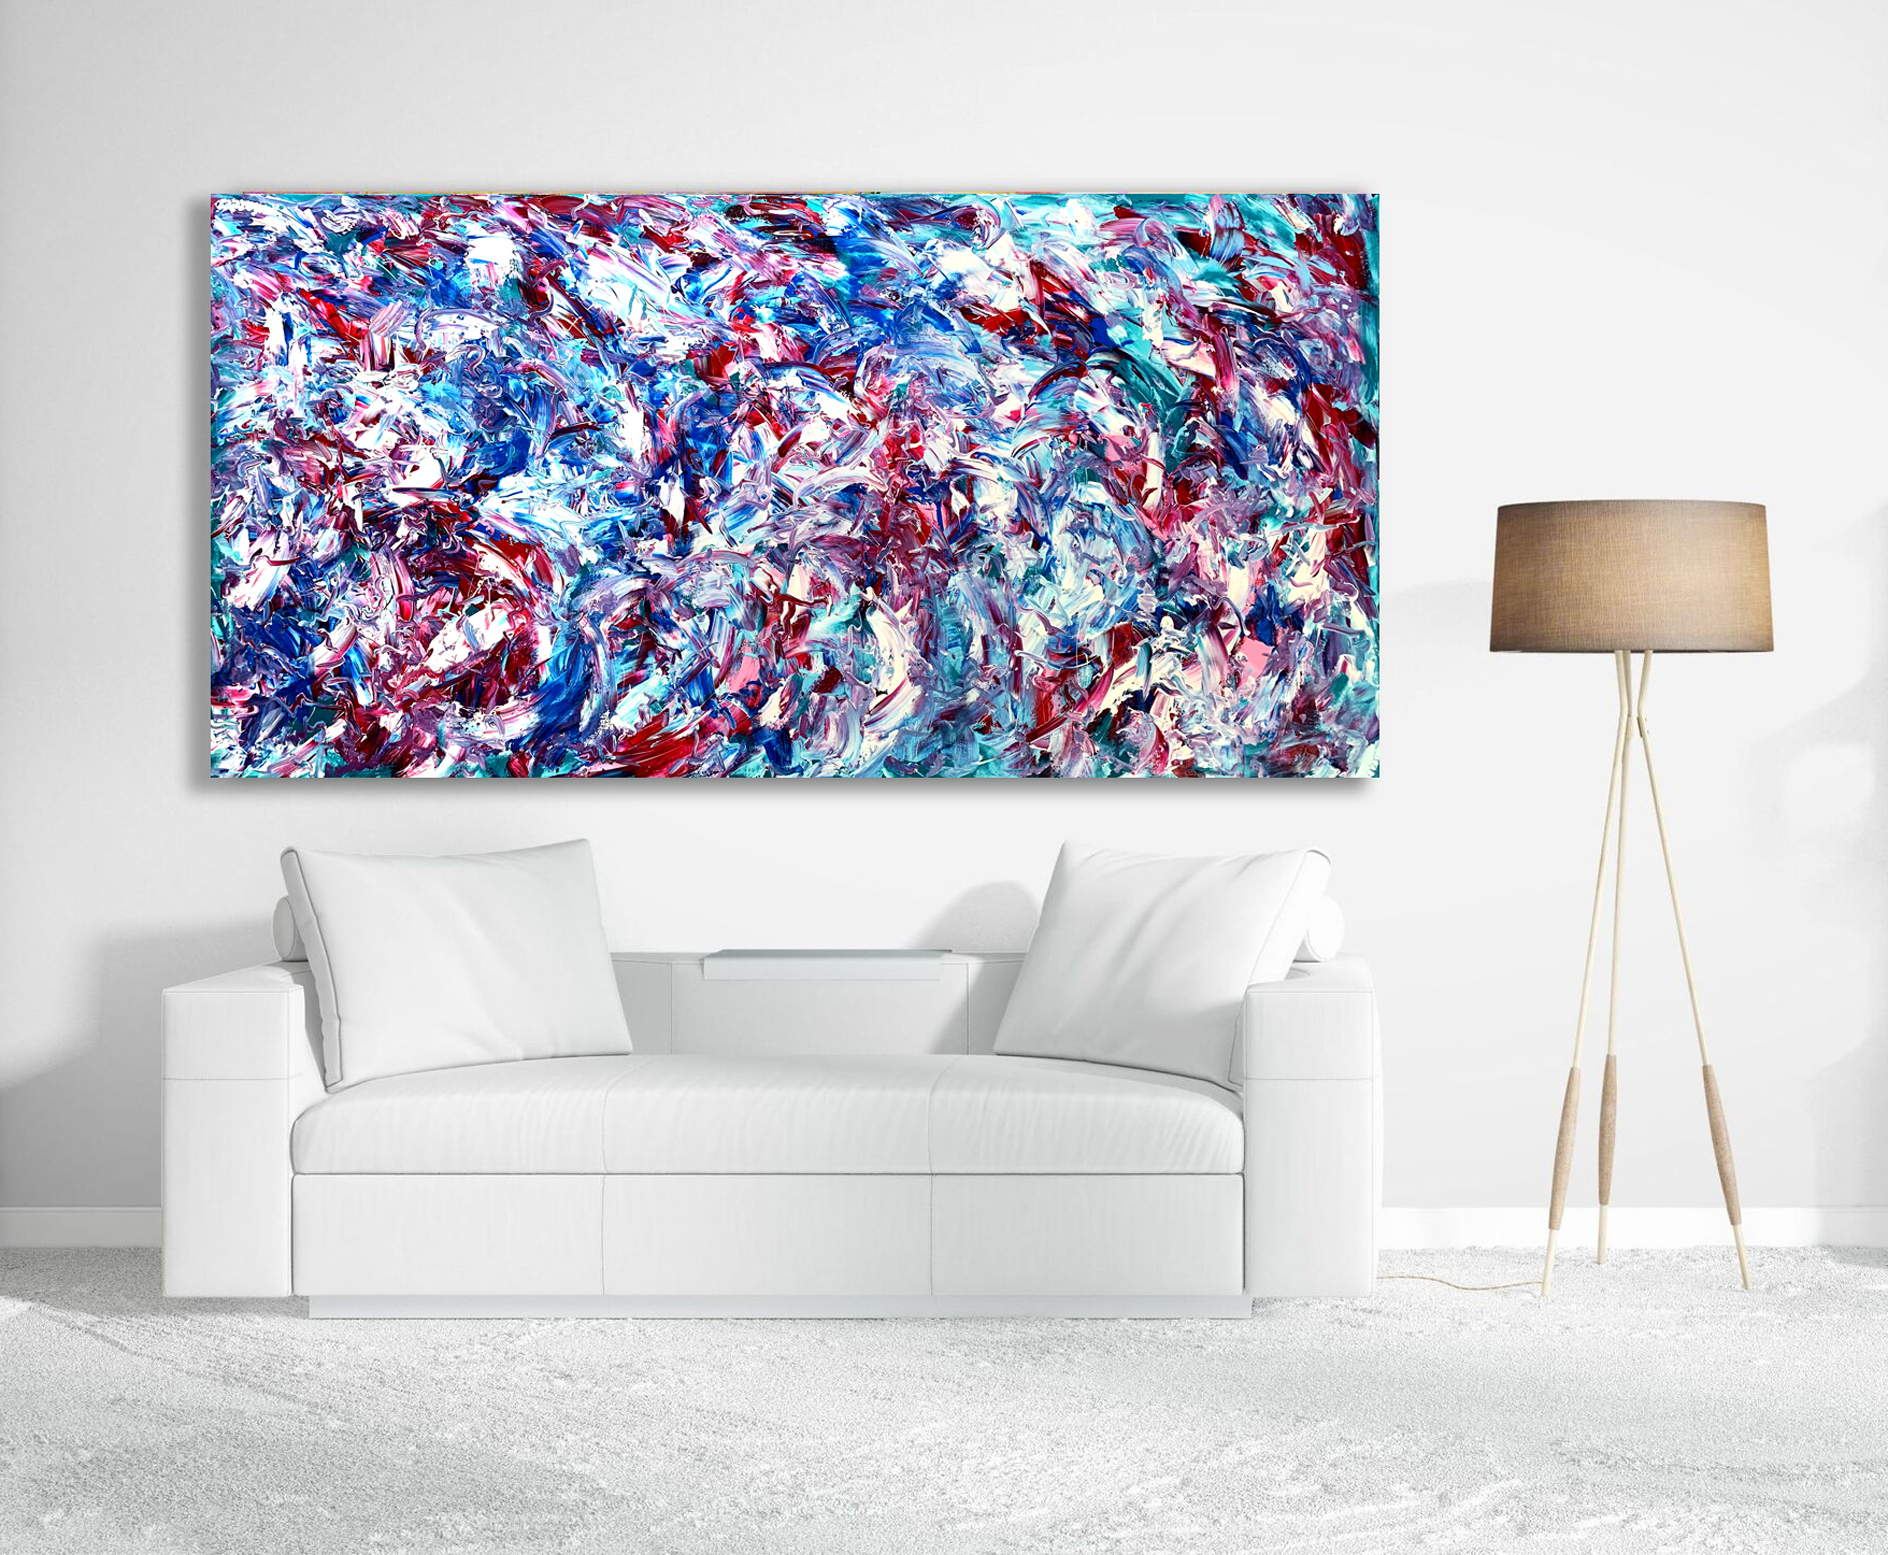 My Surrender - Abstract Expressionism by Estelle Asmodelle